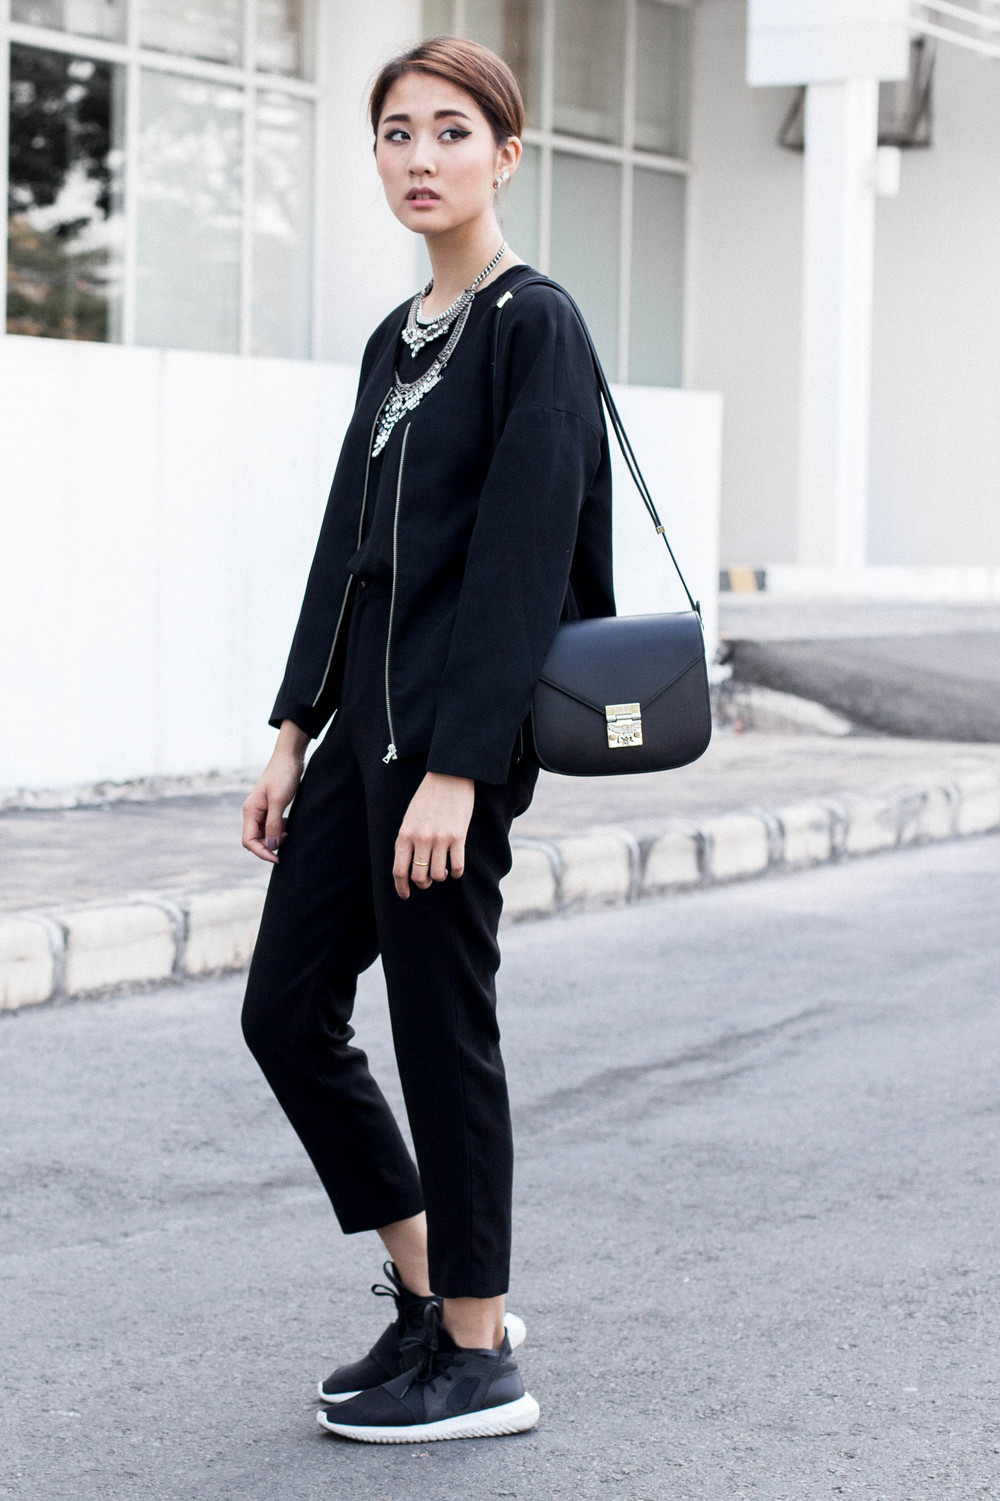 Julia Doan Vietnamese Fashion Blogger